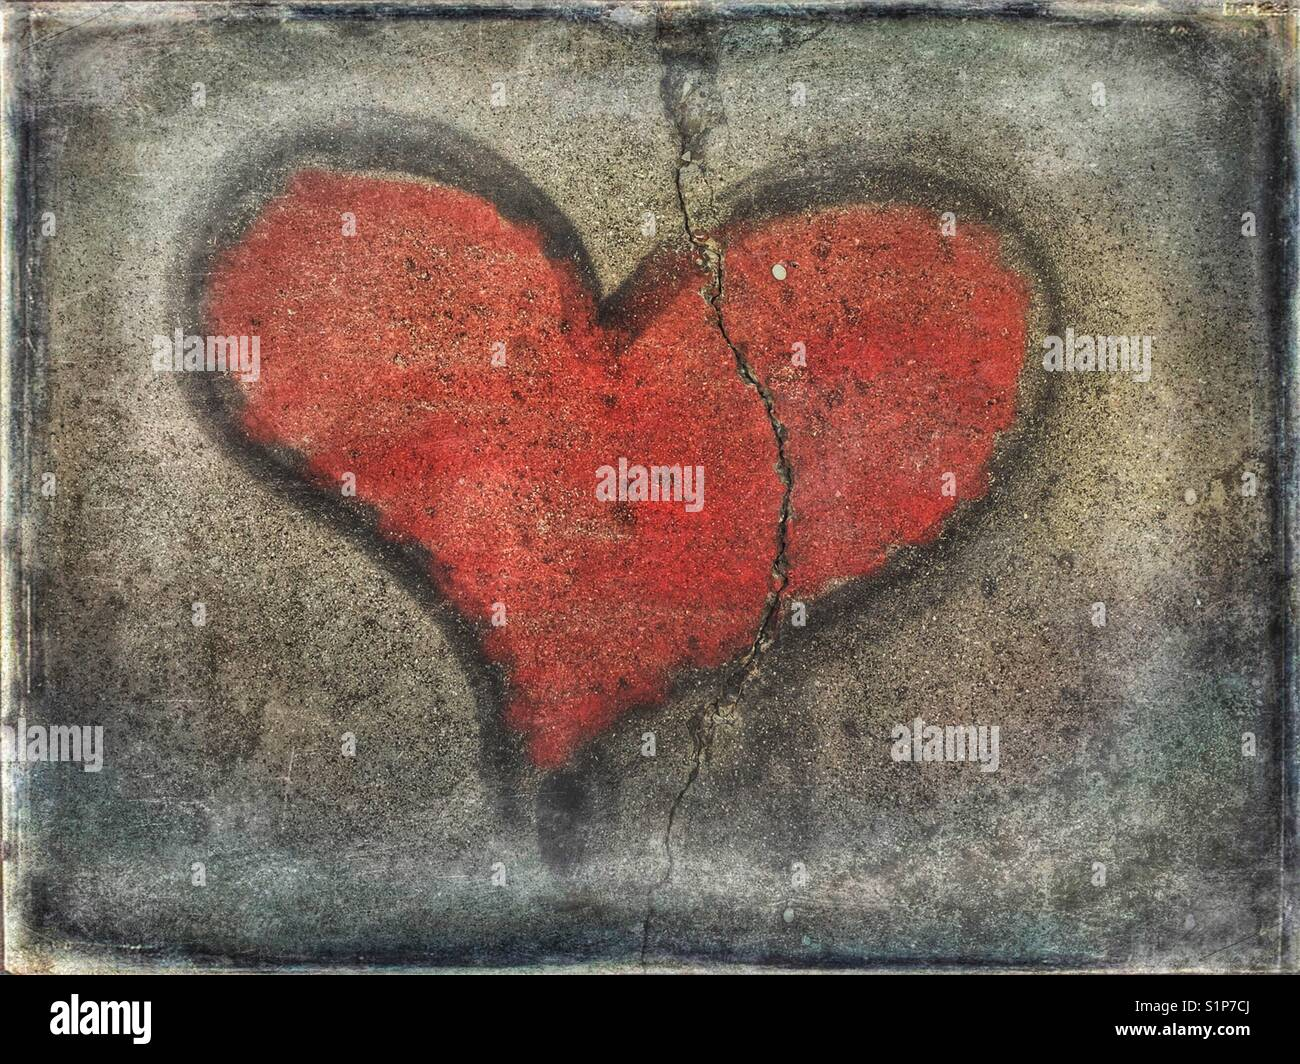 Red heart graffiti on cracked wall - Stock Image